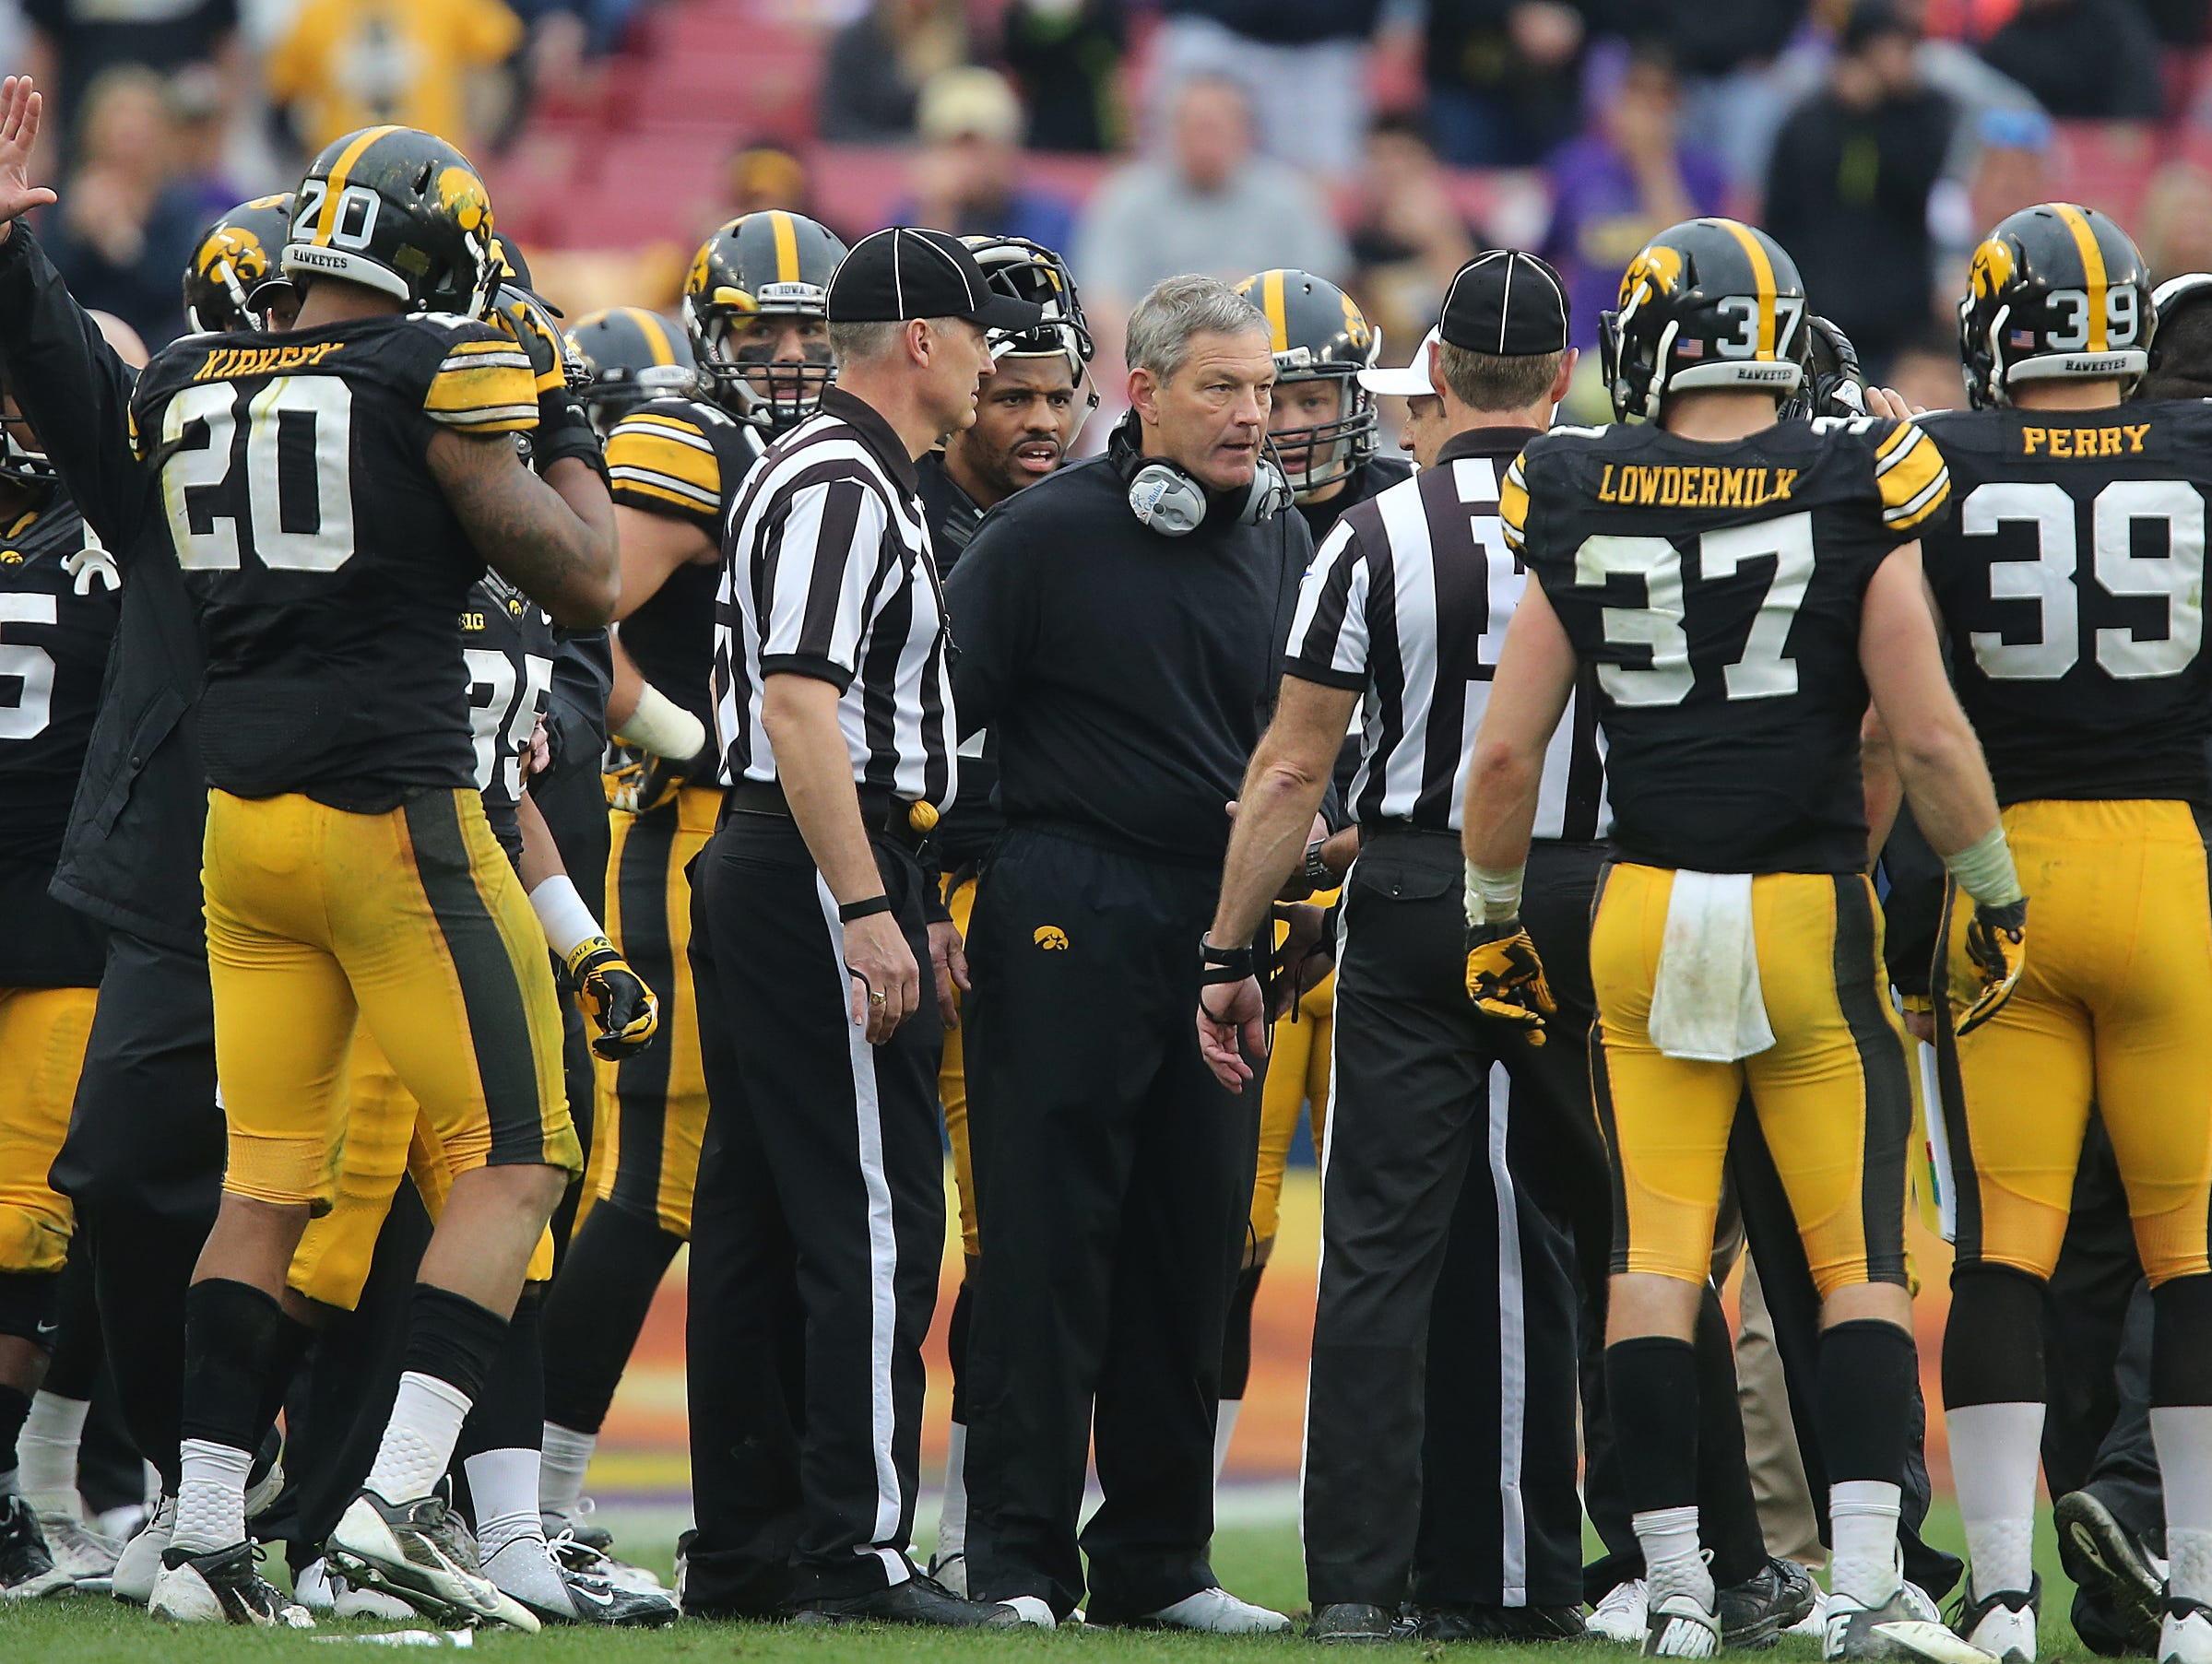 Iowa coach Kirk Ferentz questions an official in the Outback Bowl game against LSU on Wednesday, Jan. 1, 2014, in Tampa, Florida. (Bryon Houlgrave/The Register)